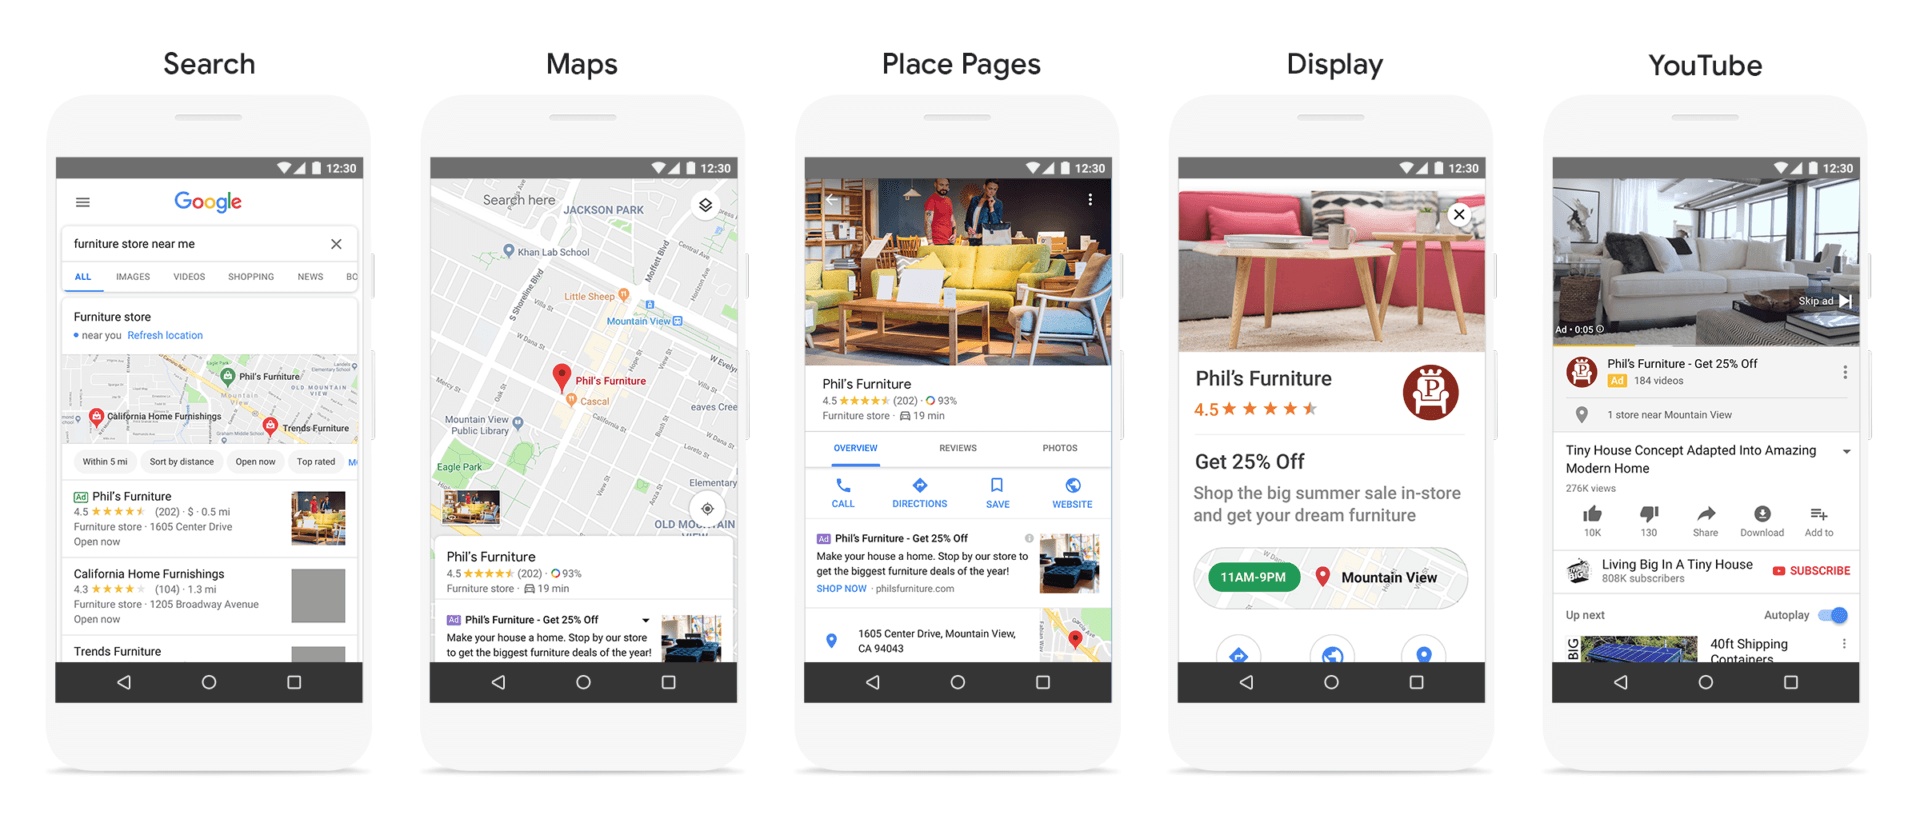 Google Adwords to Google Ads Everything you need to know local campaigns